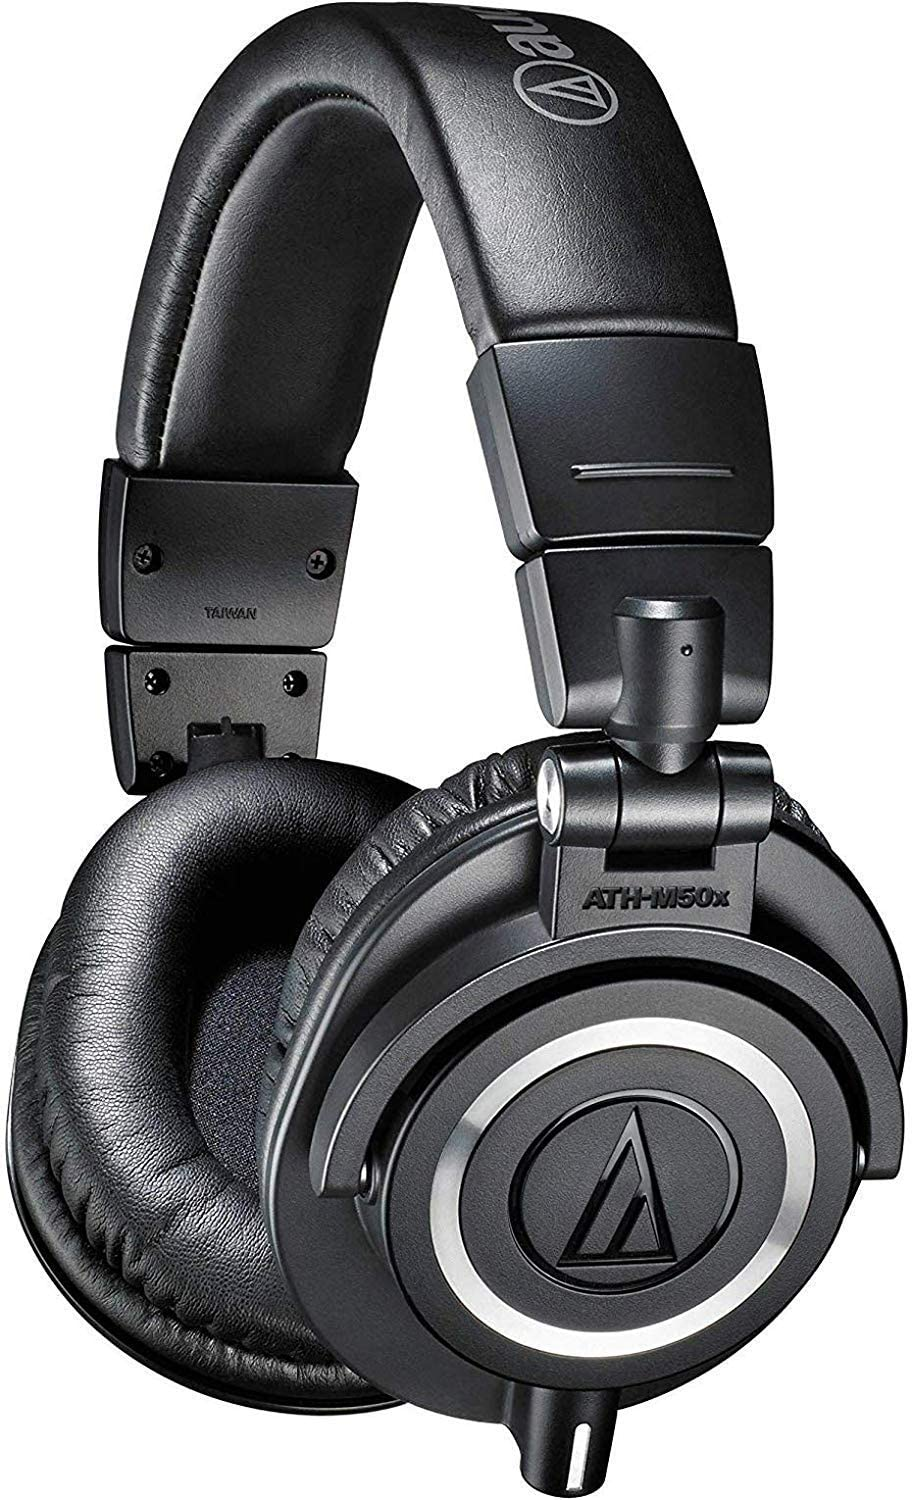 10 Best Closed Back Headphones 2021 - Buying Guide 1